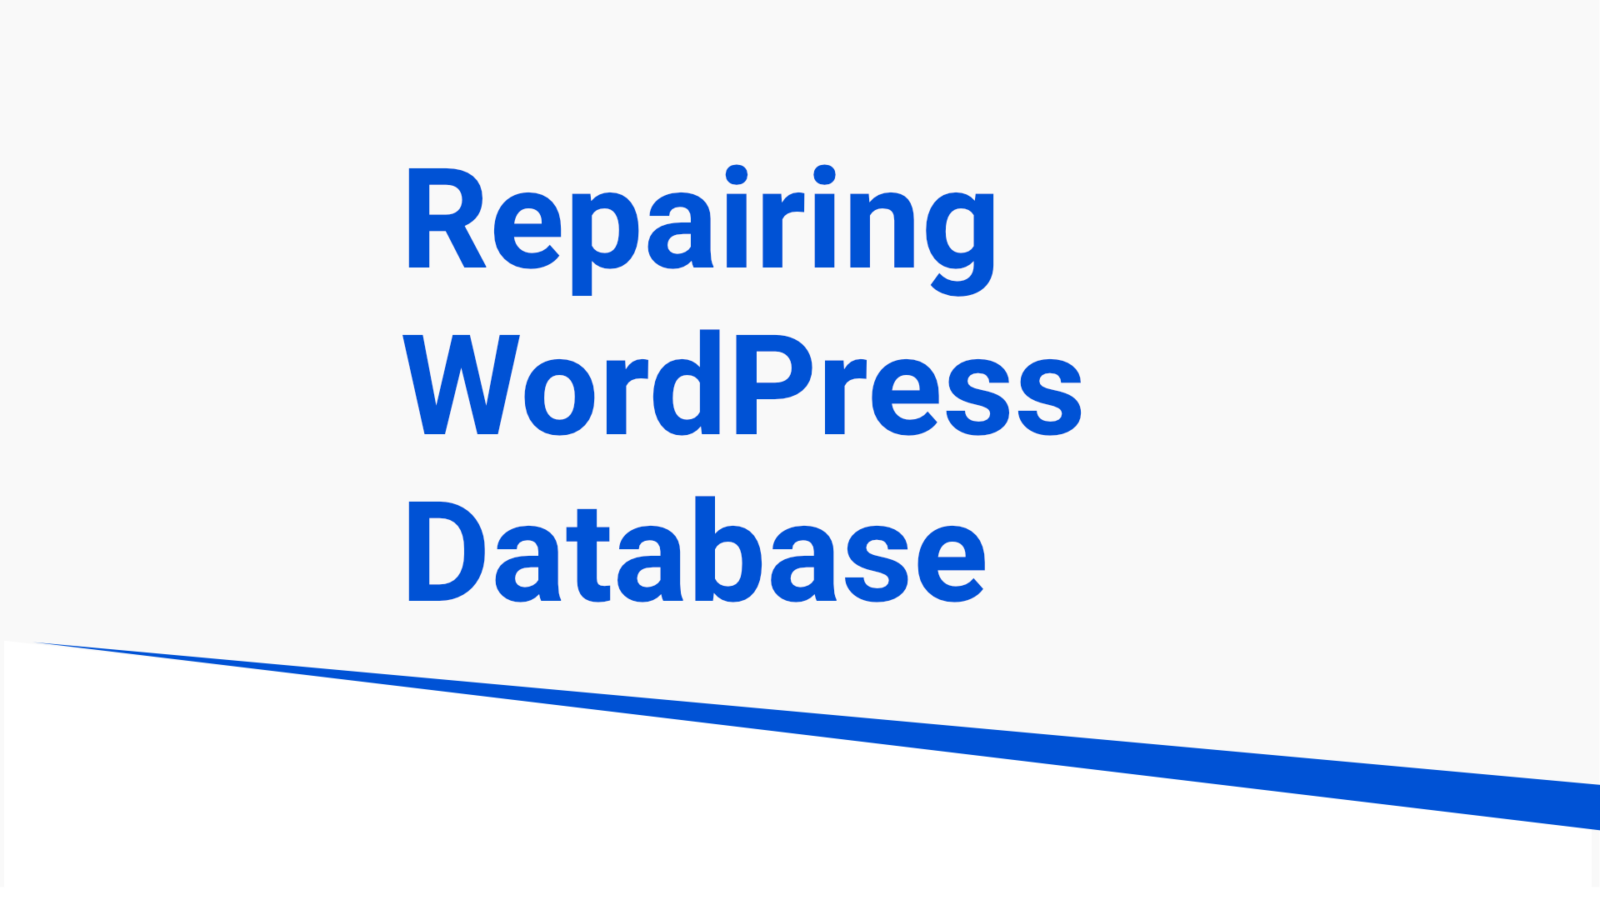 Repairing WordPress Database